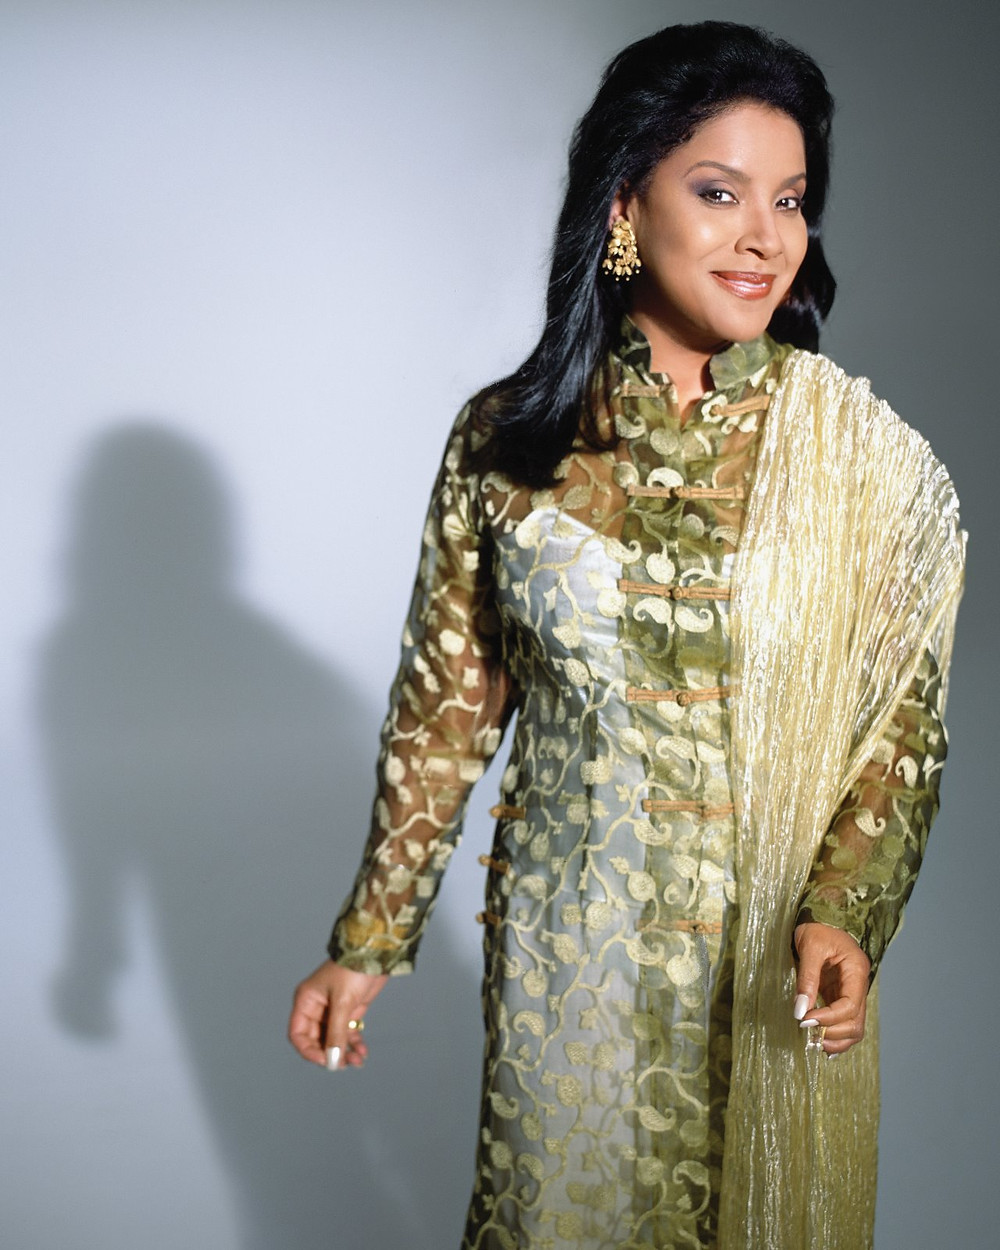 PHYLICIA RASHAD. Photo by Matthew Jordan Smith. The Culture News